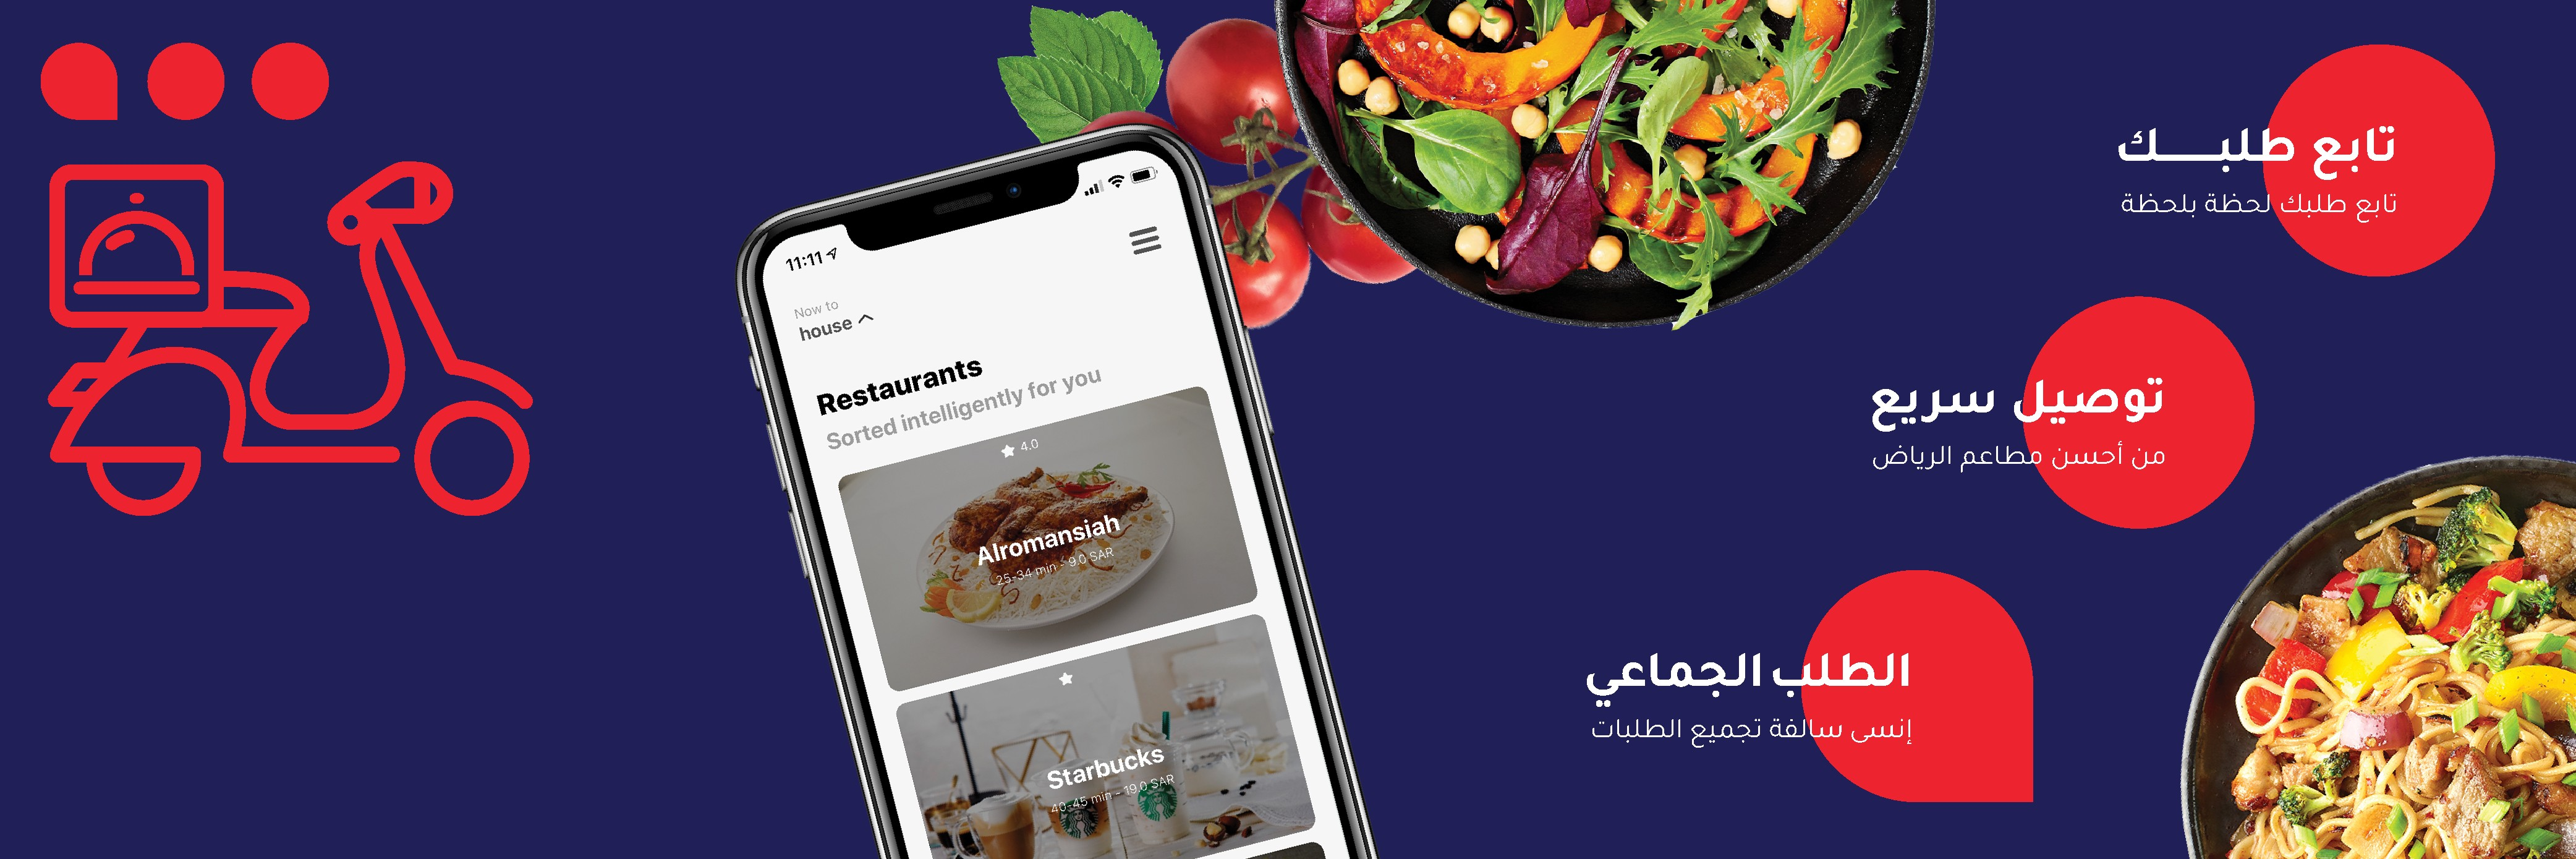 Ngwah - Most advanced food delivery service in Saudi Arabia